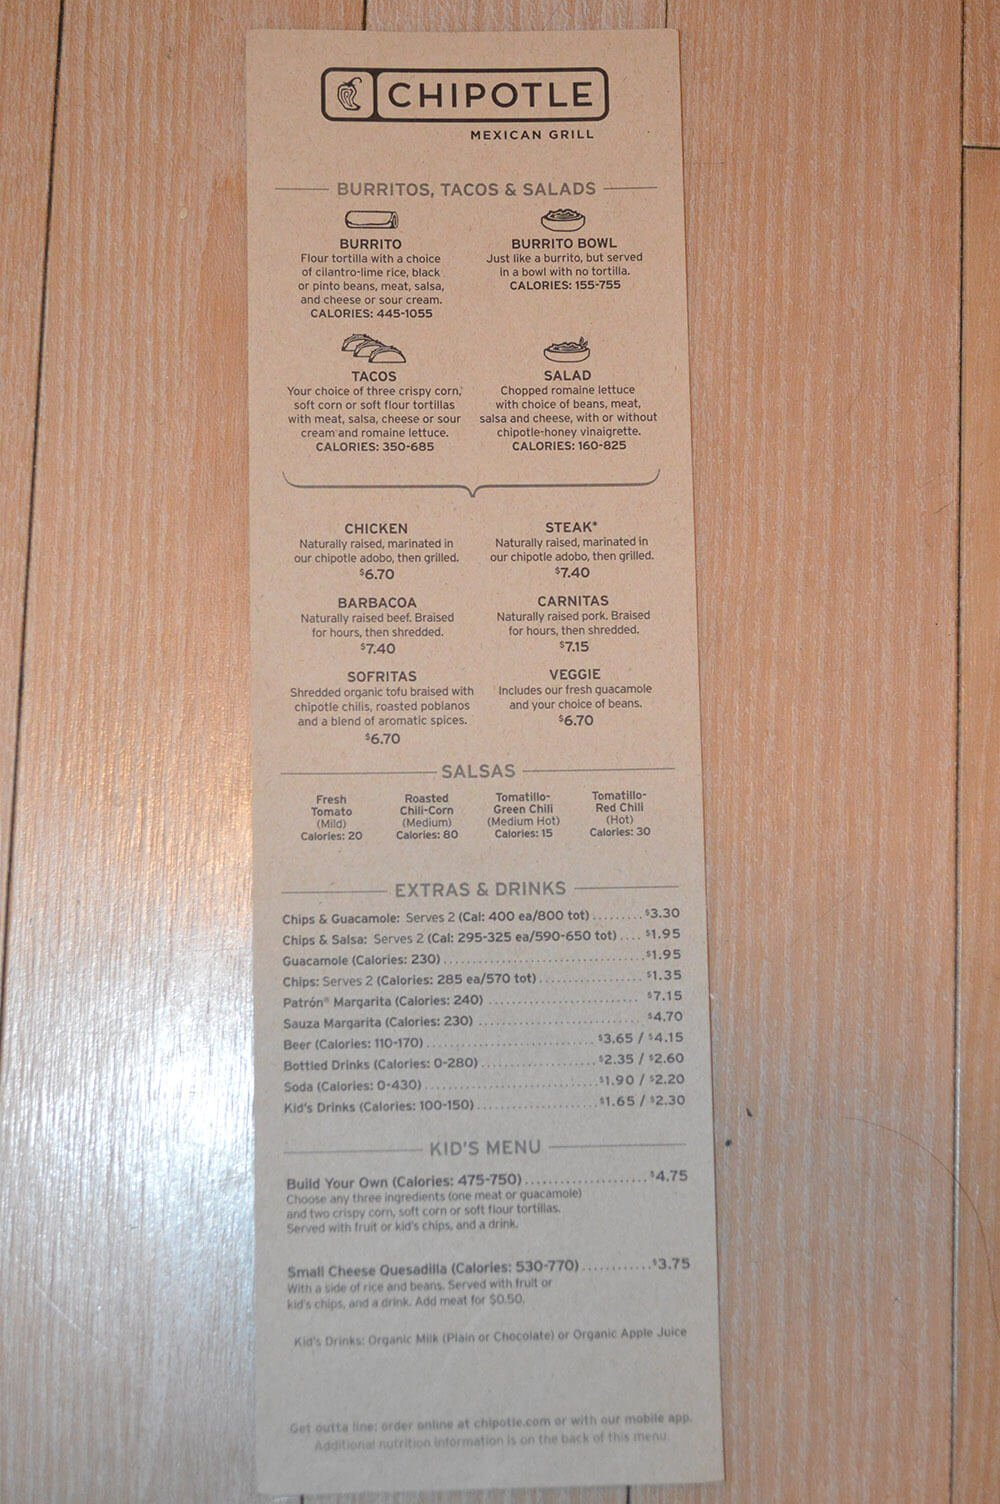 image regarding Chipotle Printable Menu named Chipotle Menu Rates